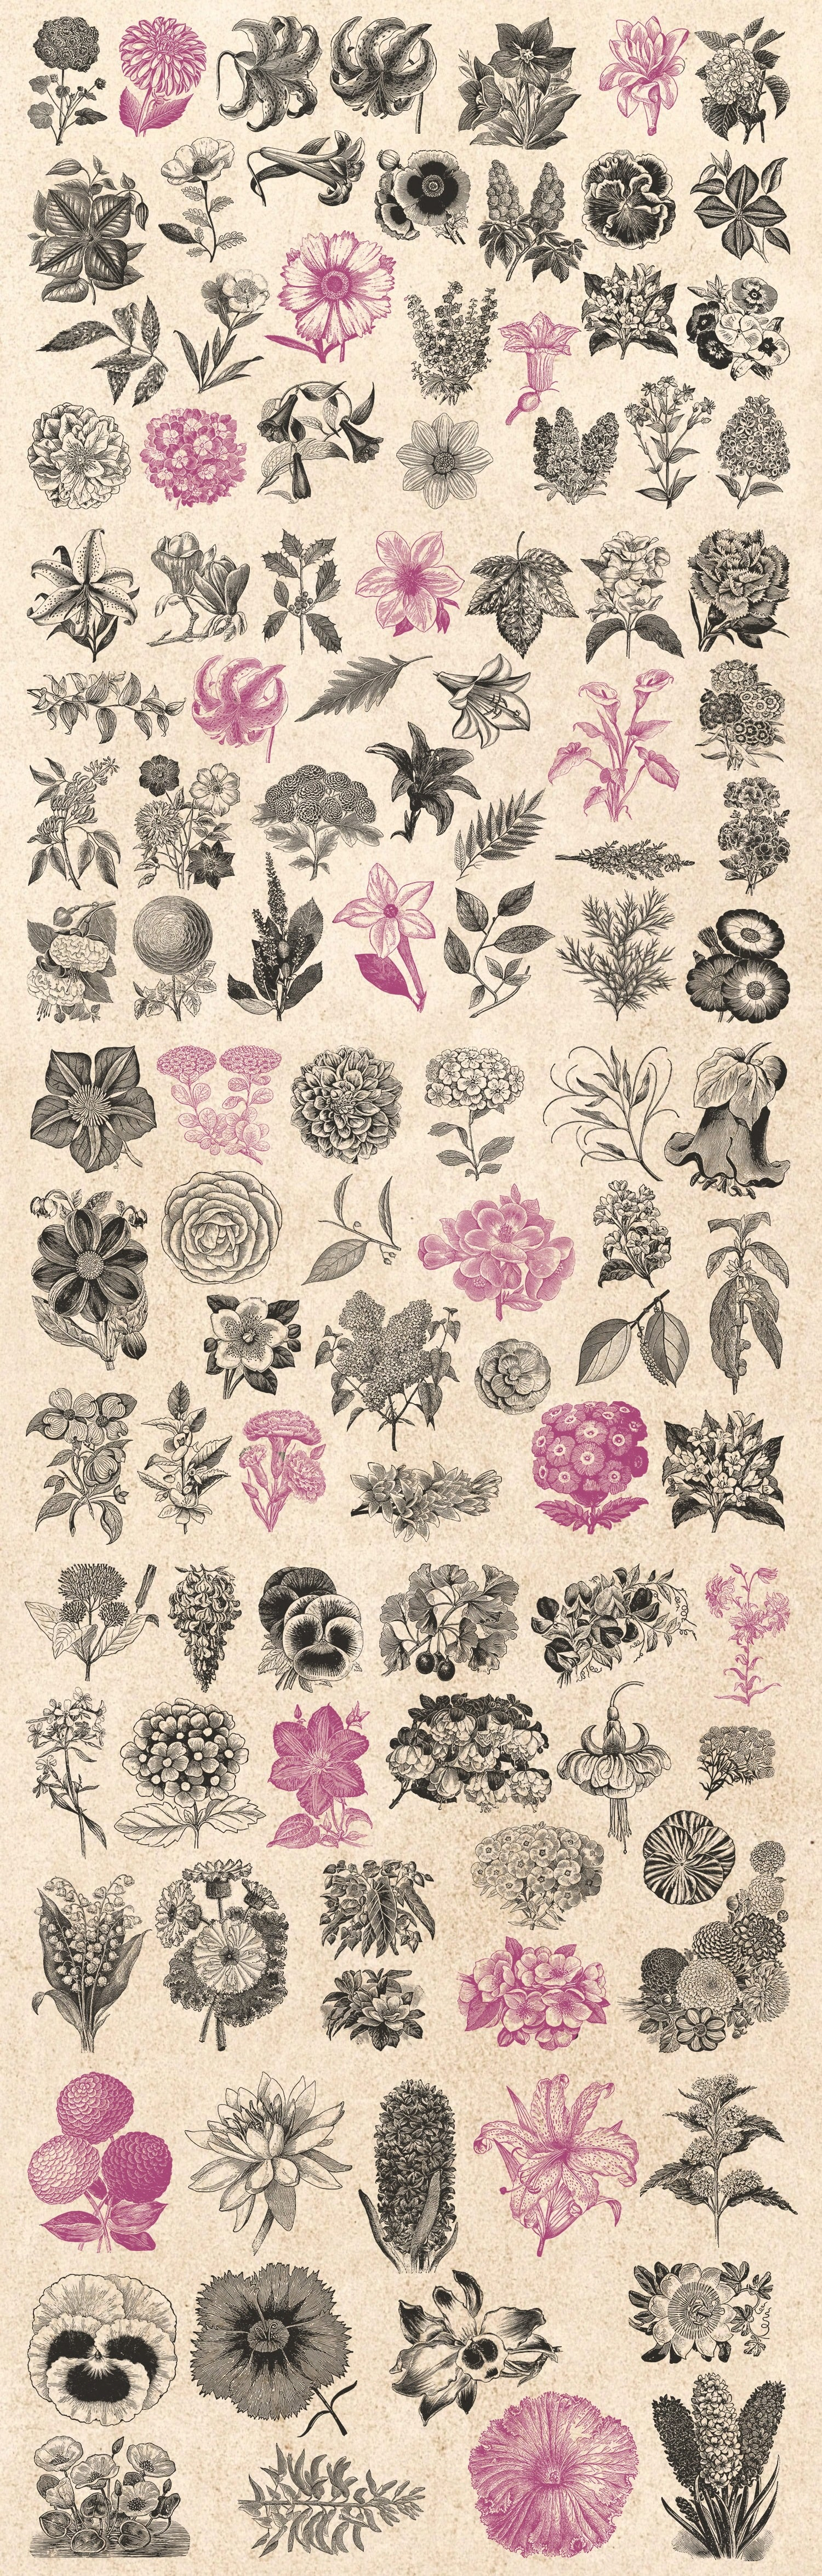 1000 Vintage Illustrations with 80% OFF - 8 flowers1